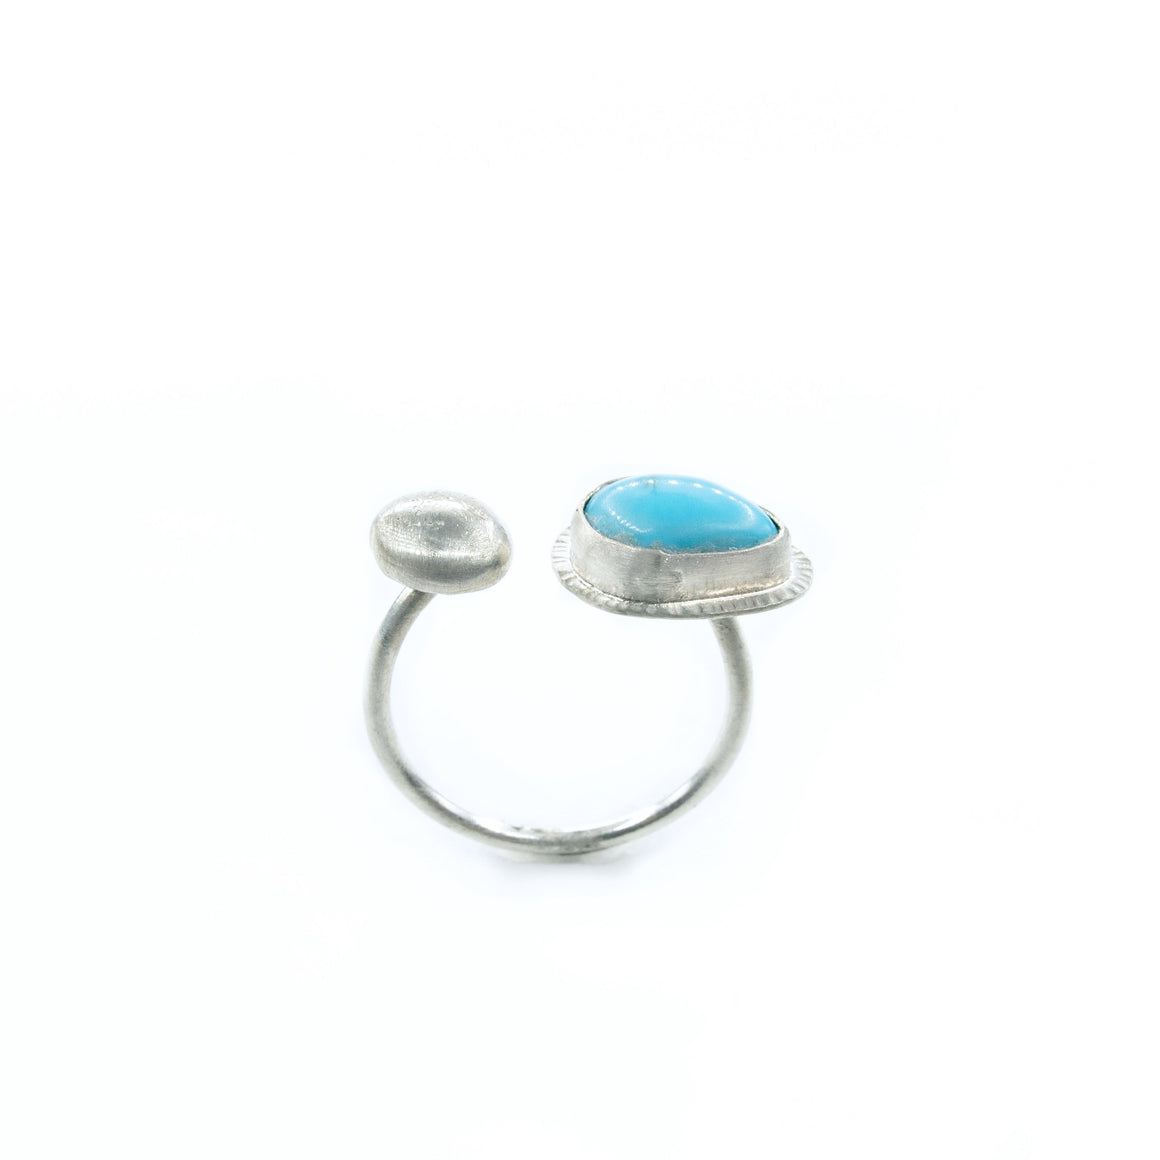 Original Sin Jewelry's Contemporary Open Ring with Turquoise and Brushed Silver